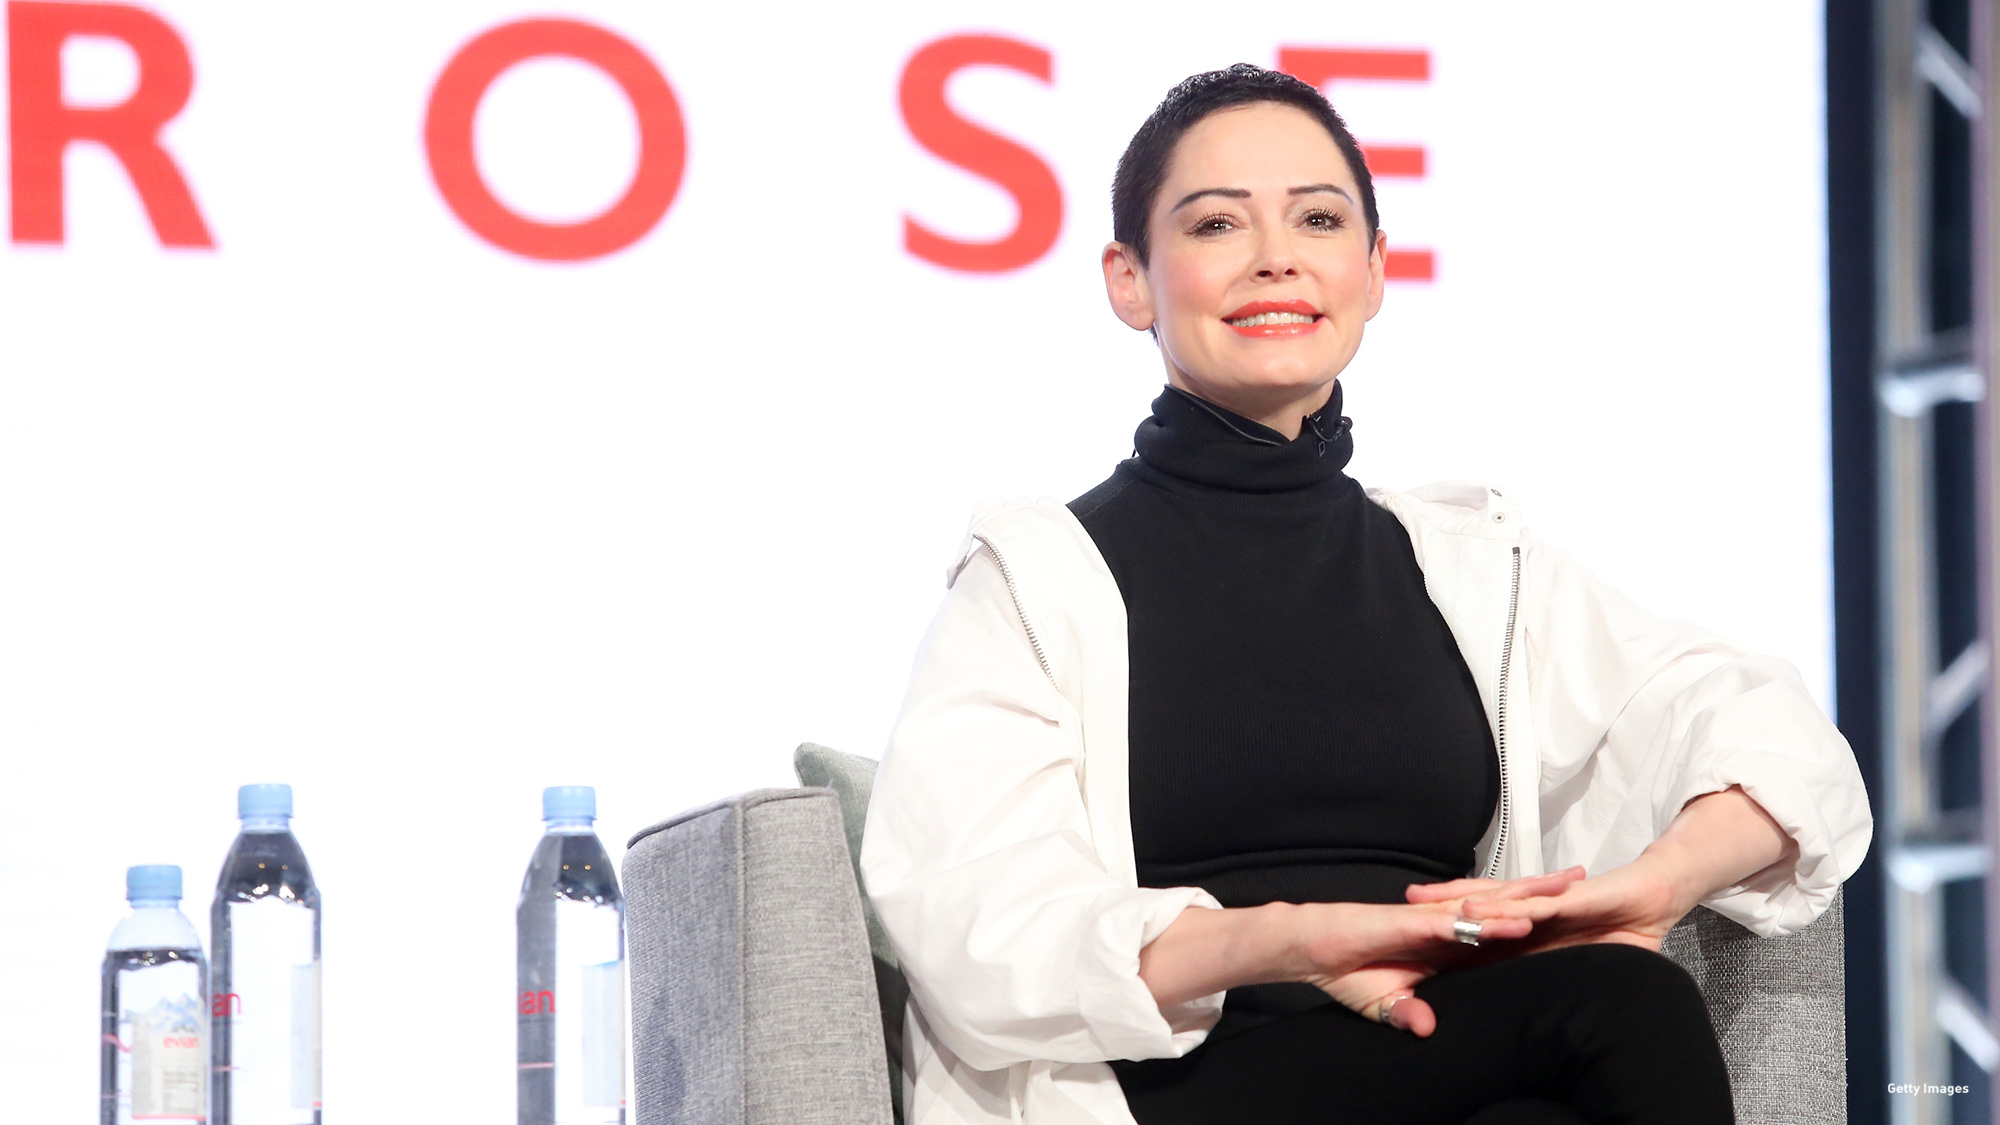 Rose McGowan: Brave